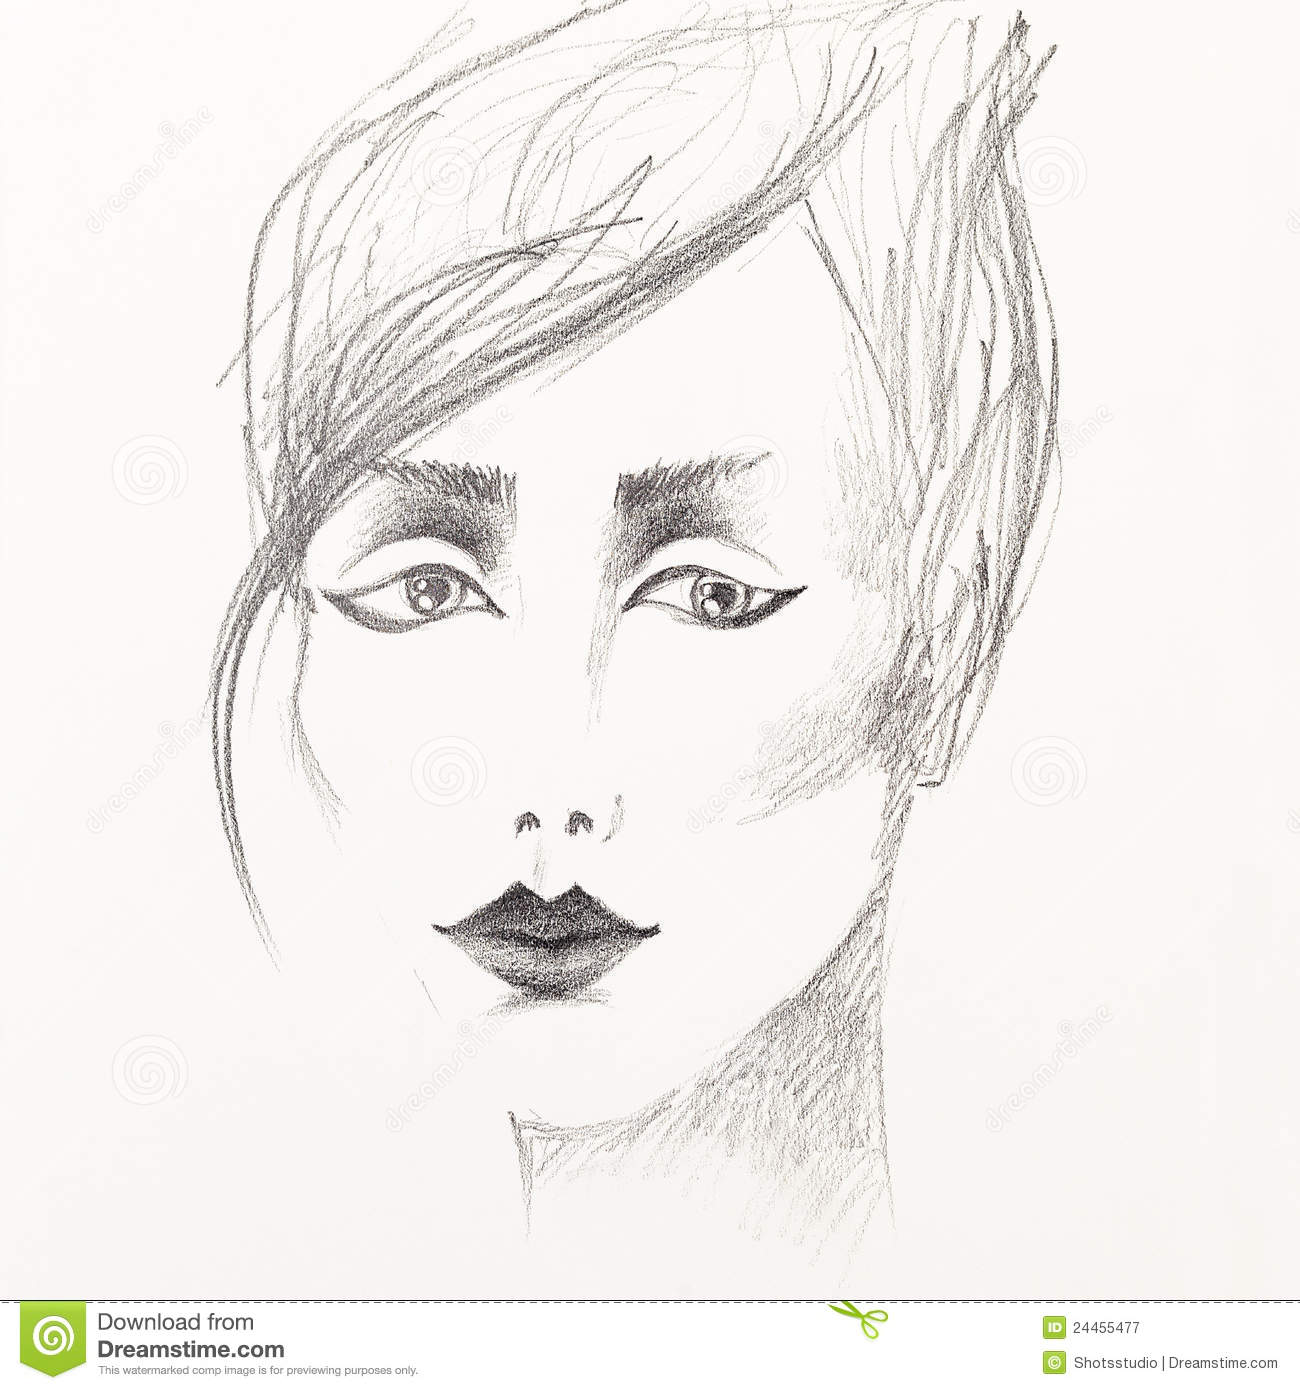 Pencil Sketch Images Free Download